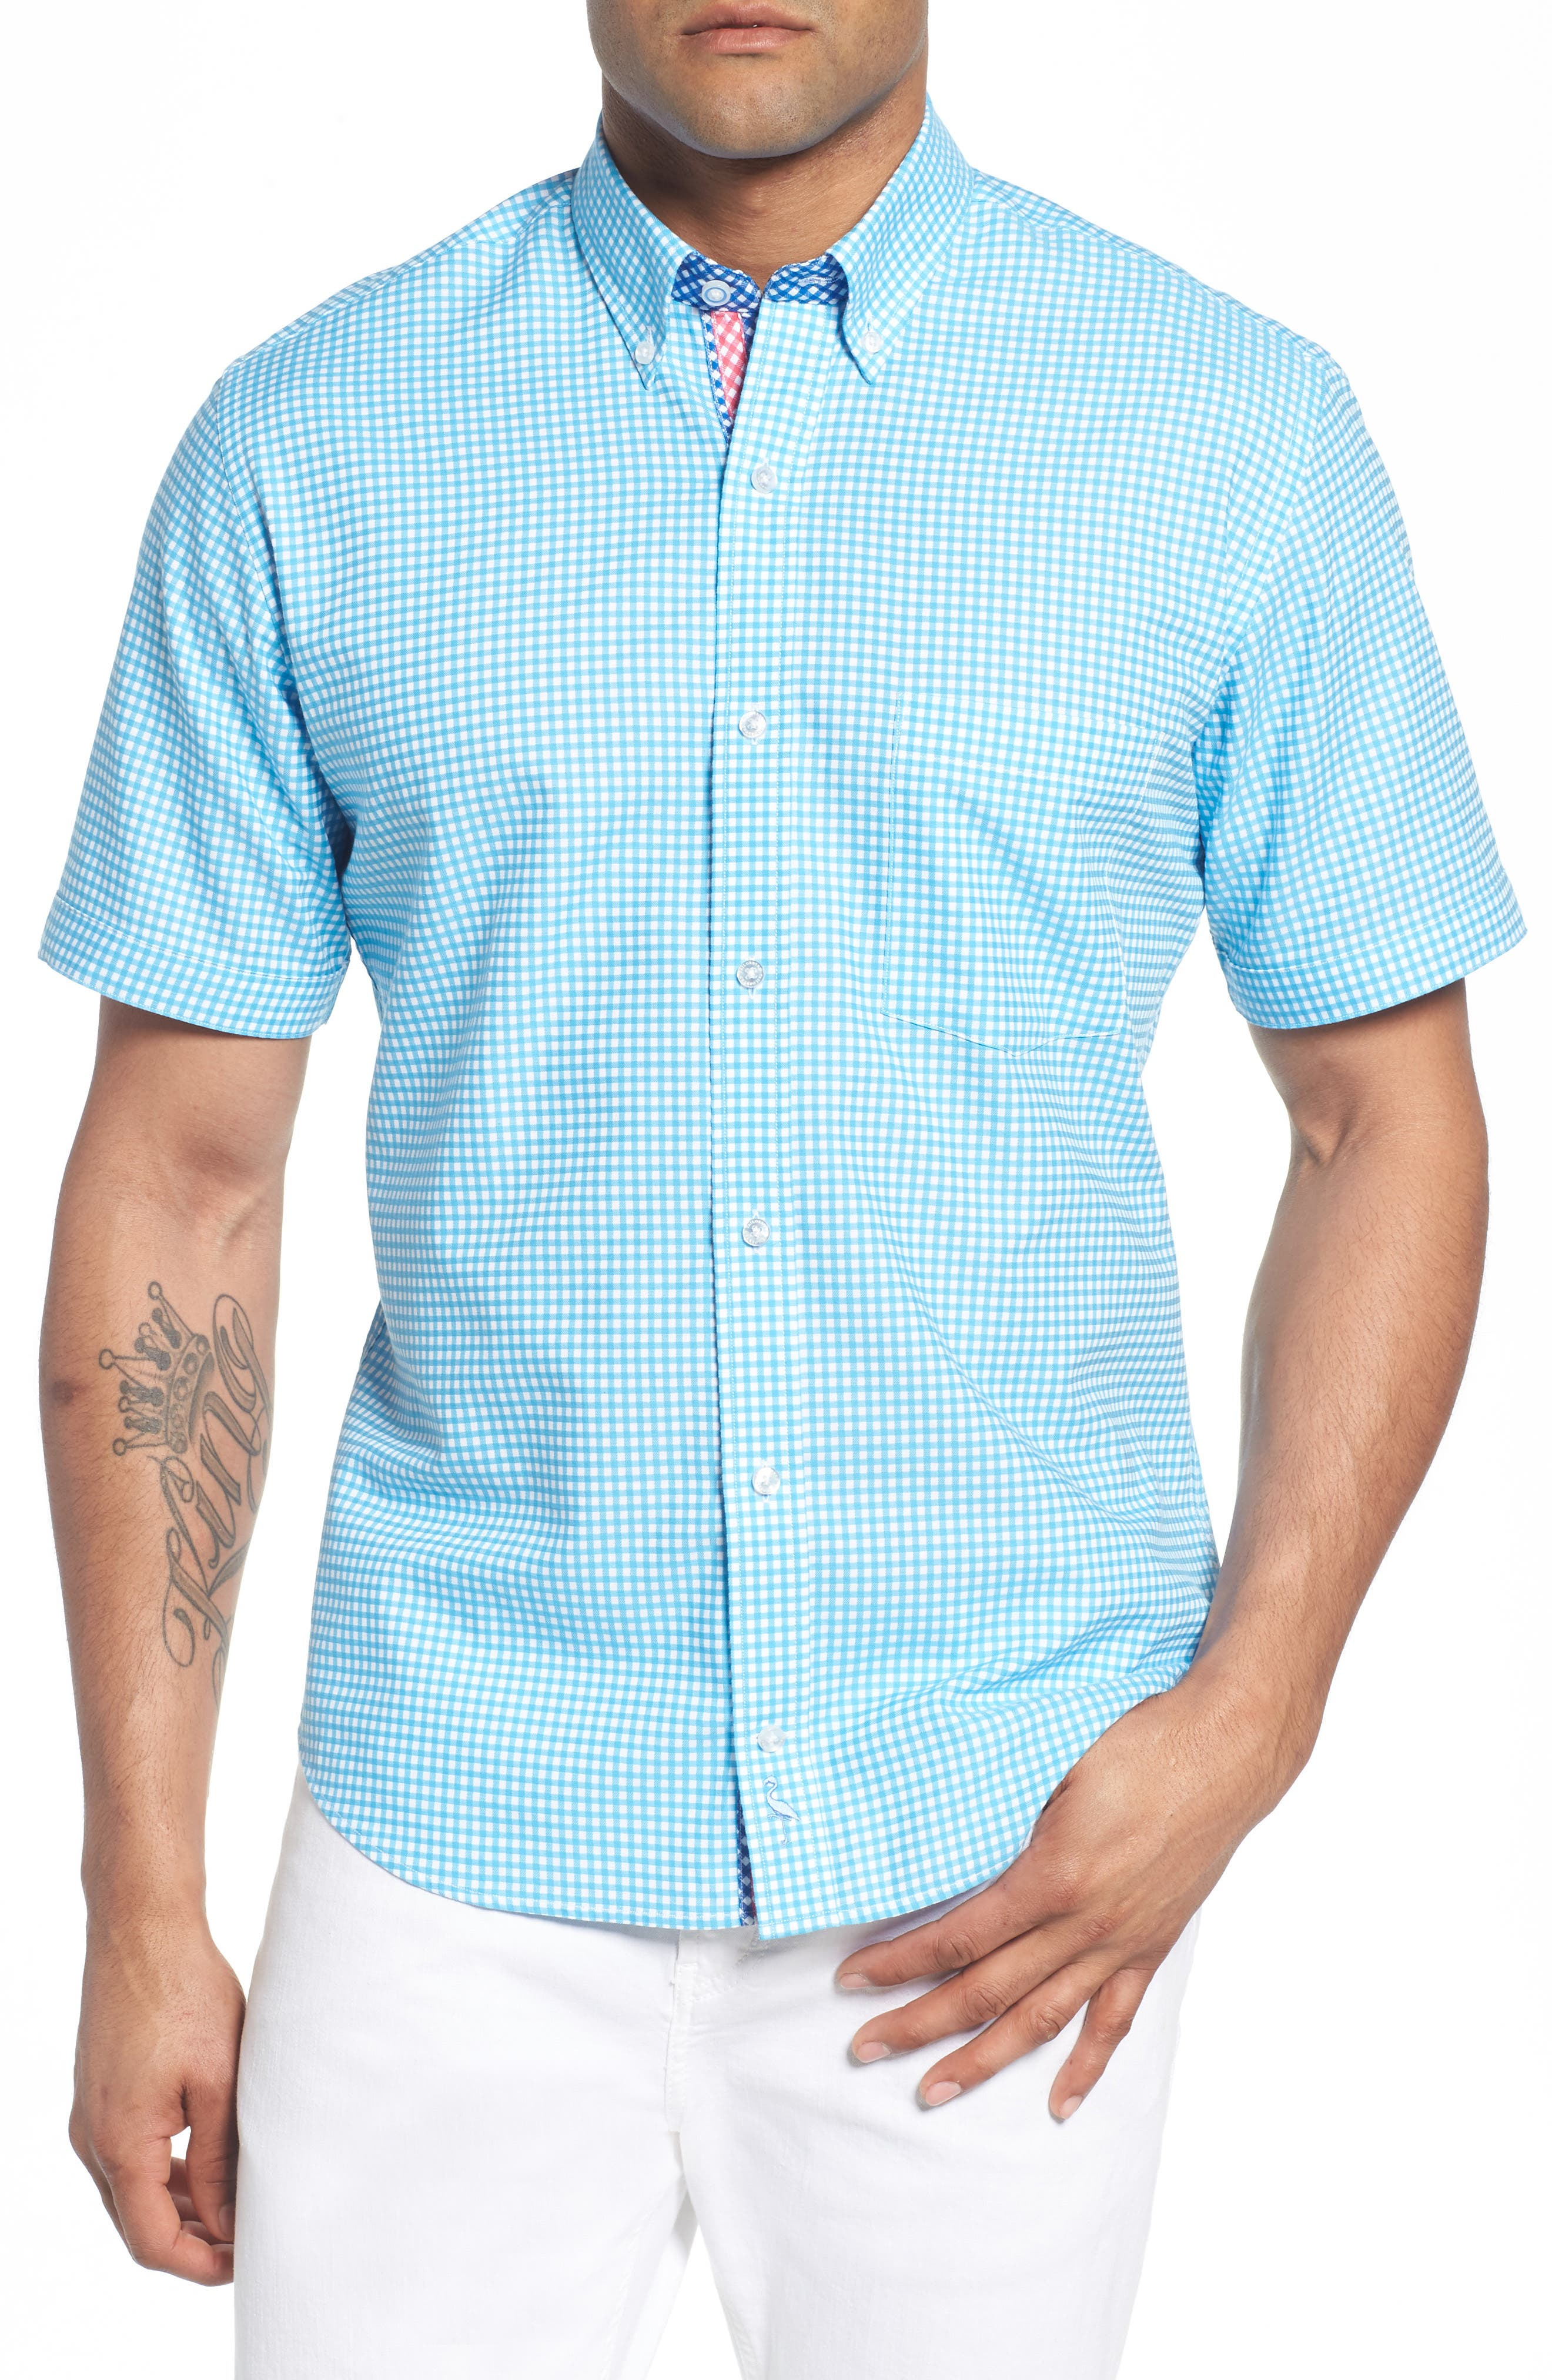 Aden Regular Fit Sport Shirt,                         Main,                         color, 465